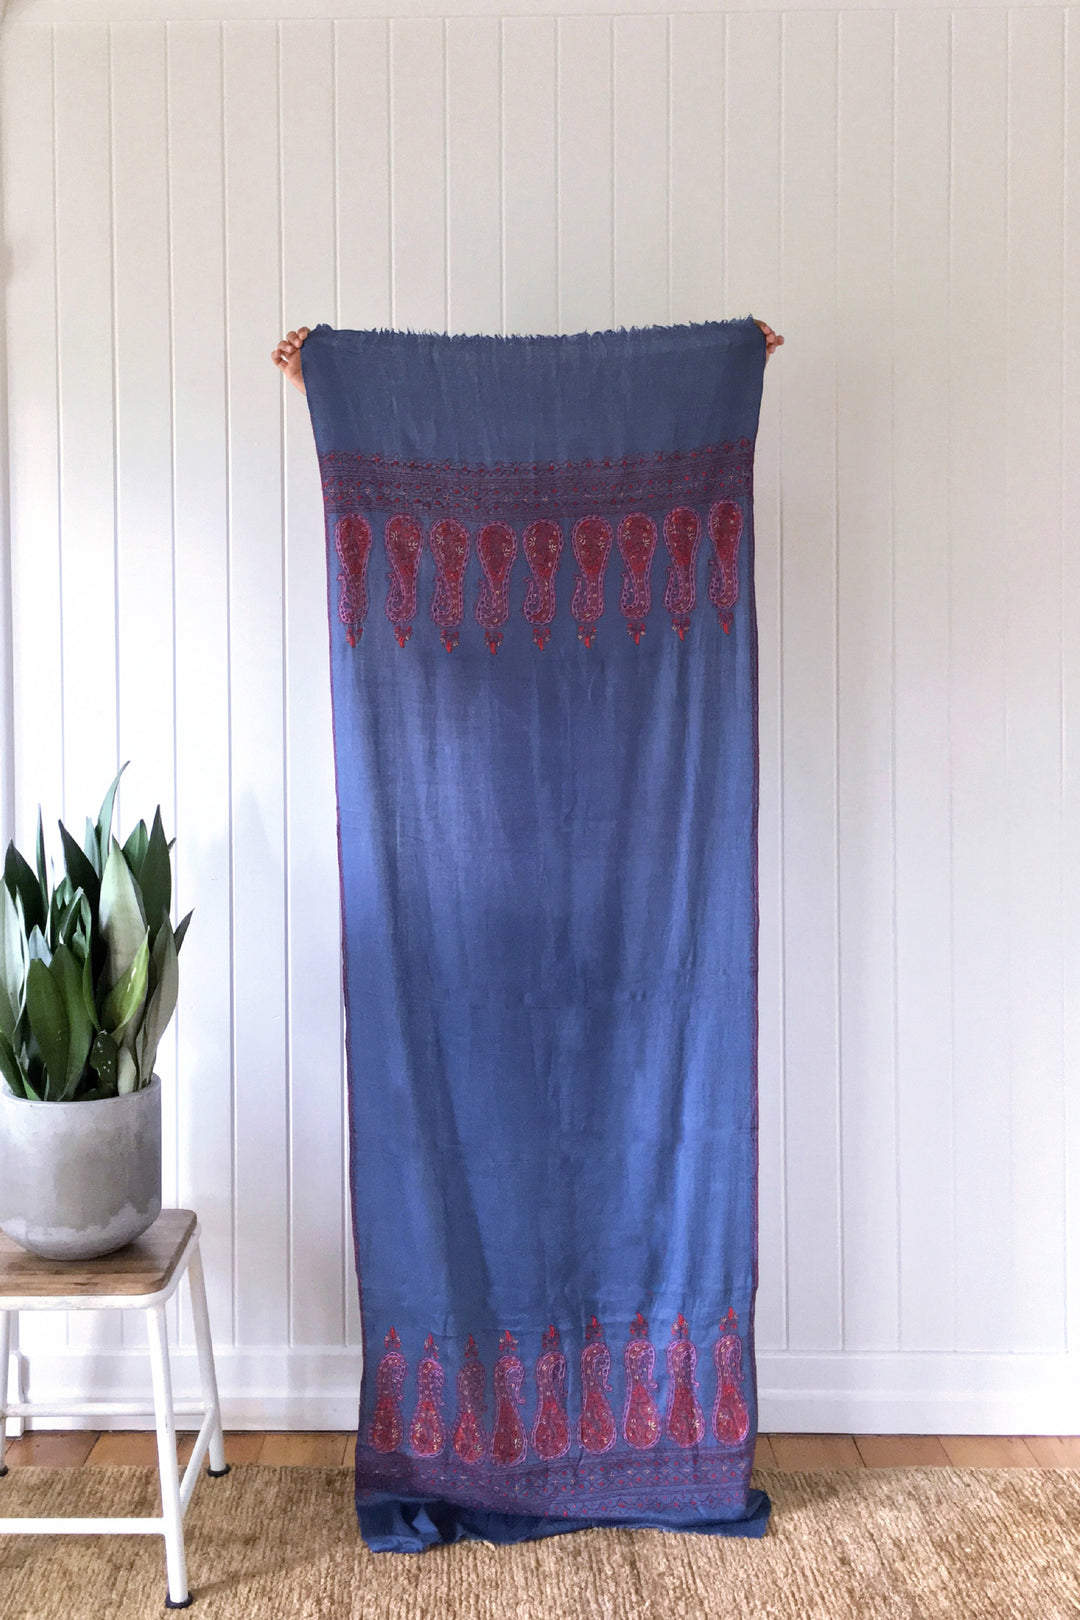 Jodhpur shawl embroidered kashmir